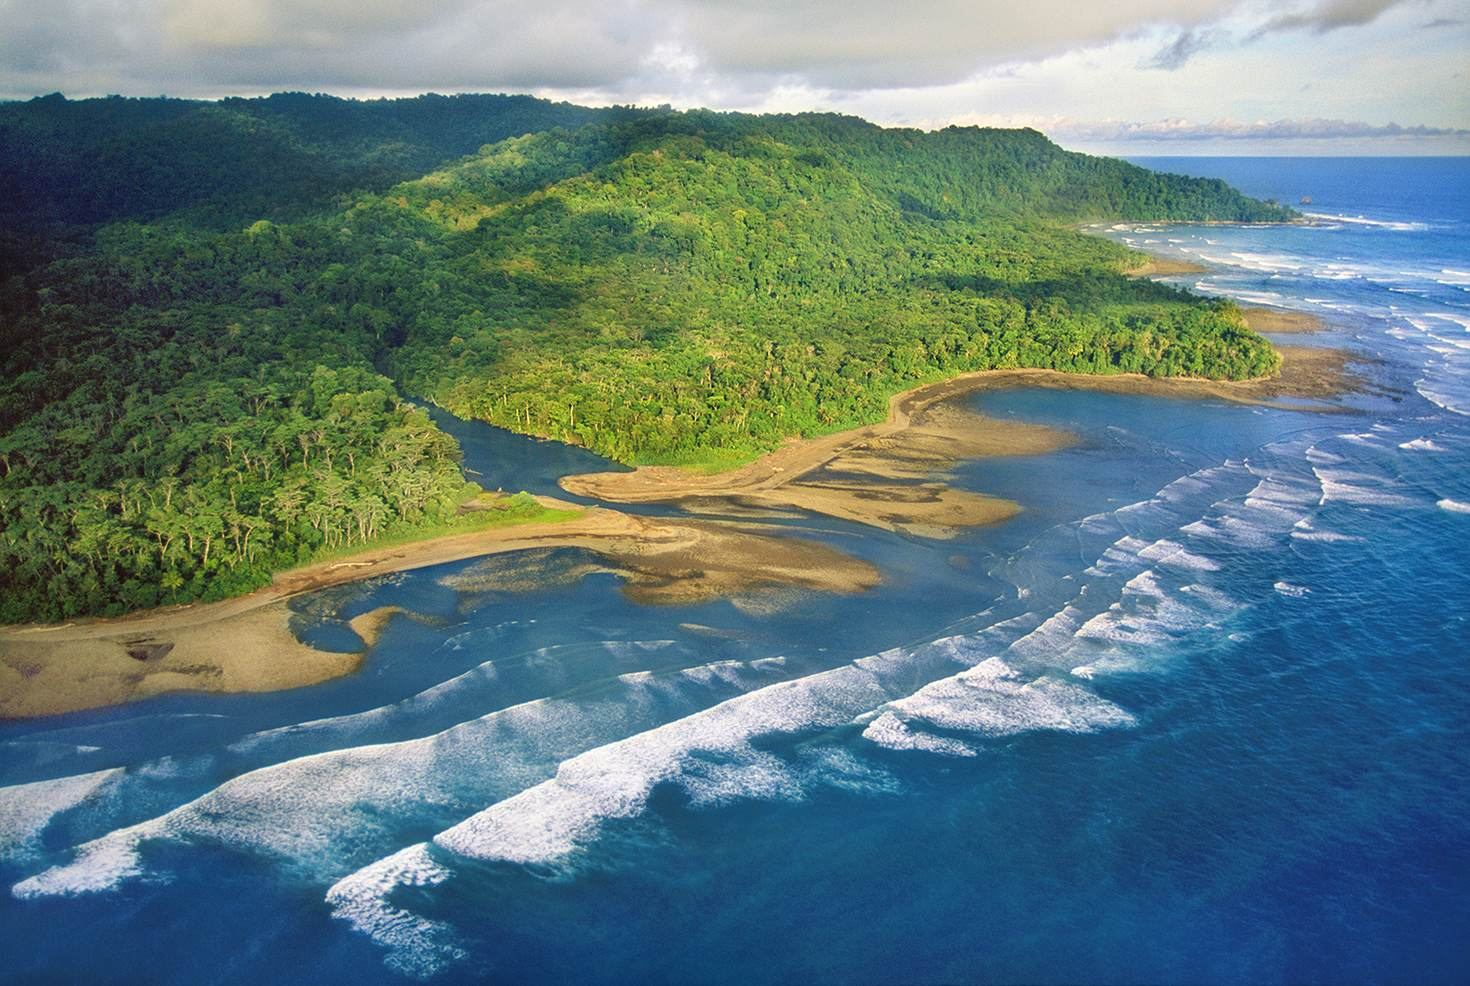 The coastline of the Osa Peninsula © Mint Images - Frans Lanting / Getty Images